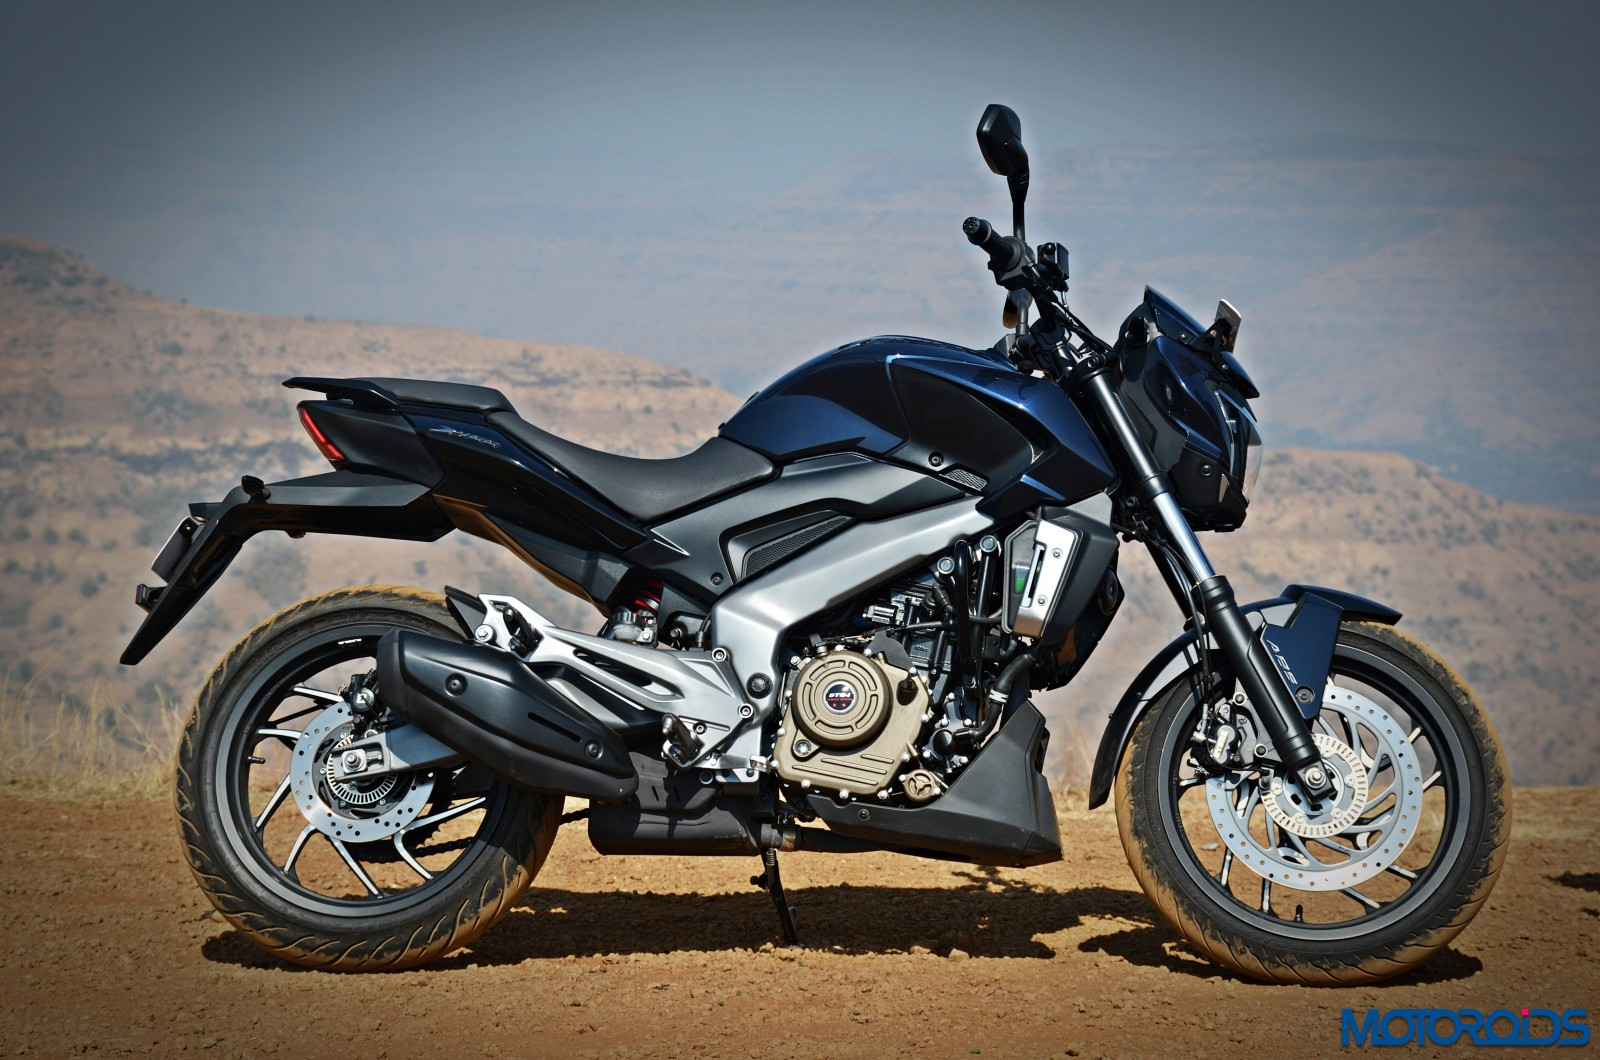 Bajaj-Dominar-400-side-profile